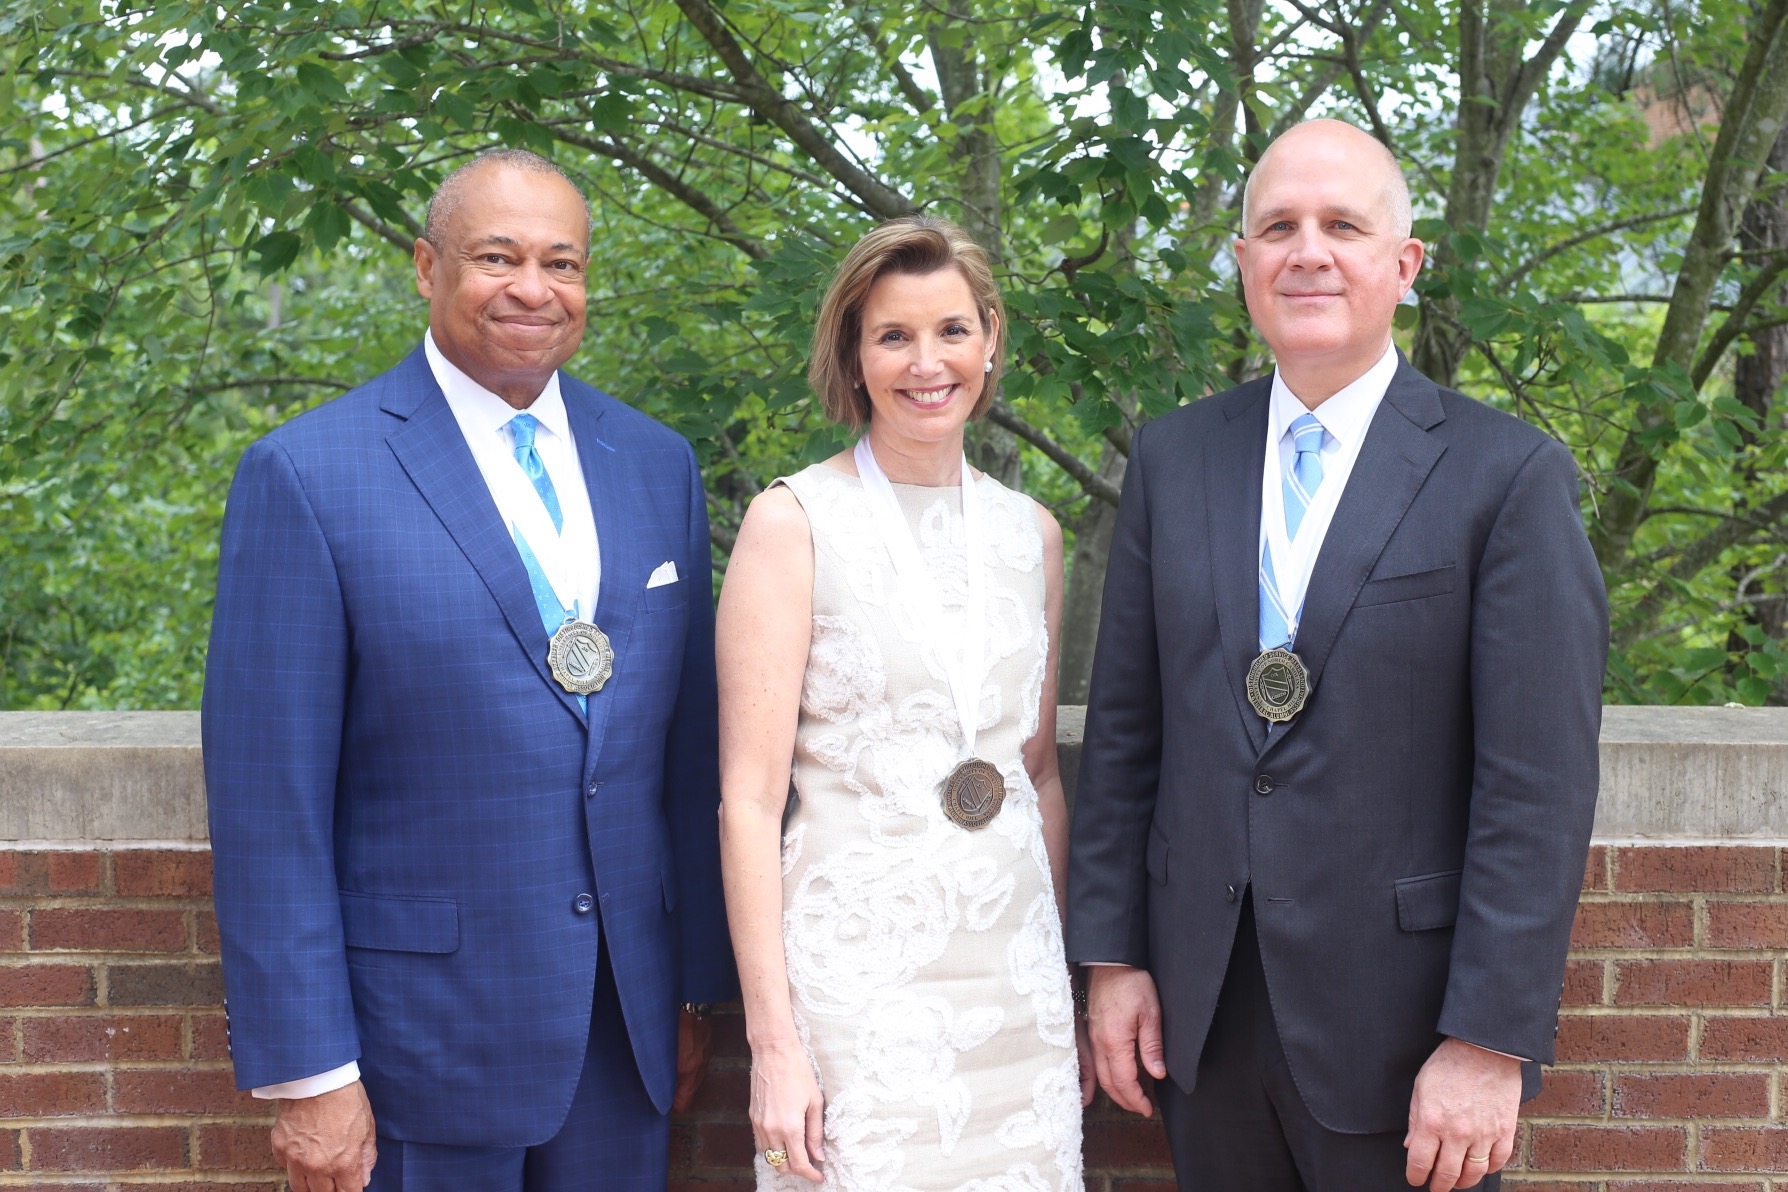 The recipients of the GAA's 2017 Distinguished Service Medals are Michael Kennedy '79, Sallie Krawcheck '87 and Stephen Farmer. (Photo by Ray Black III)